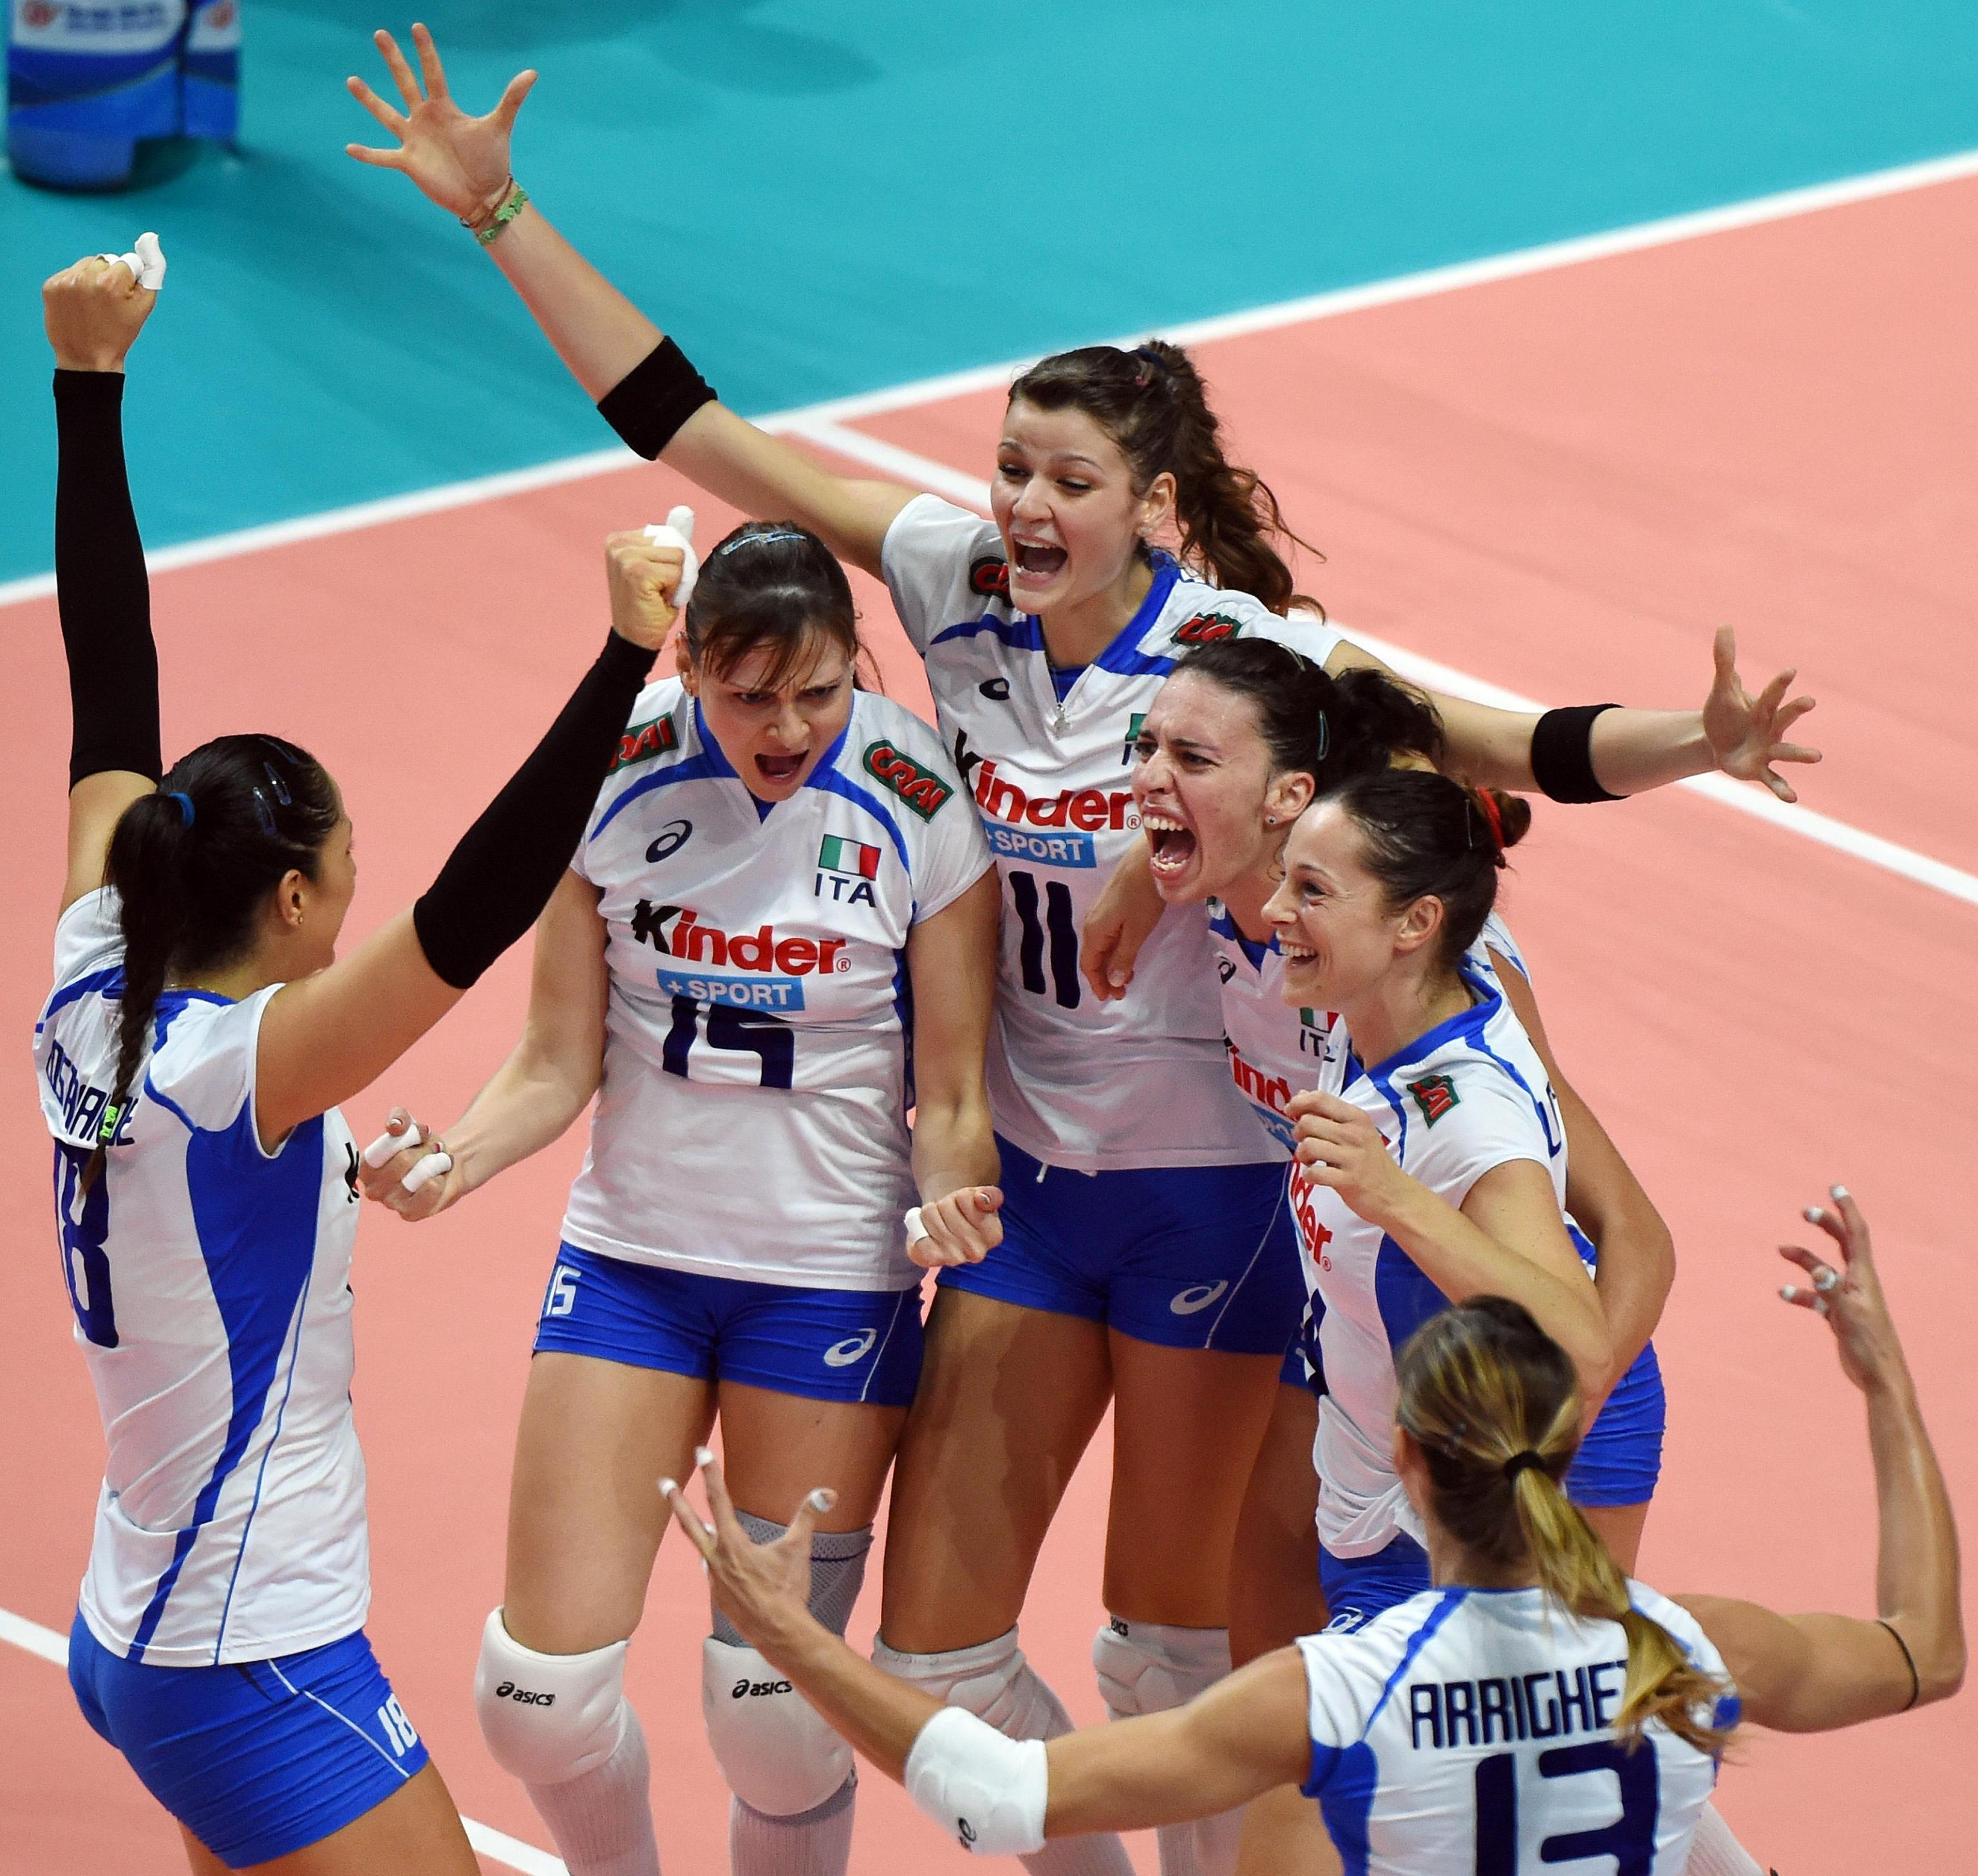 italia russia volley femminile oggi - photo #4